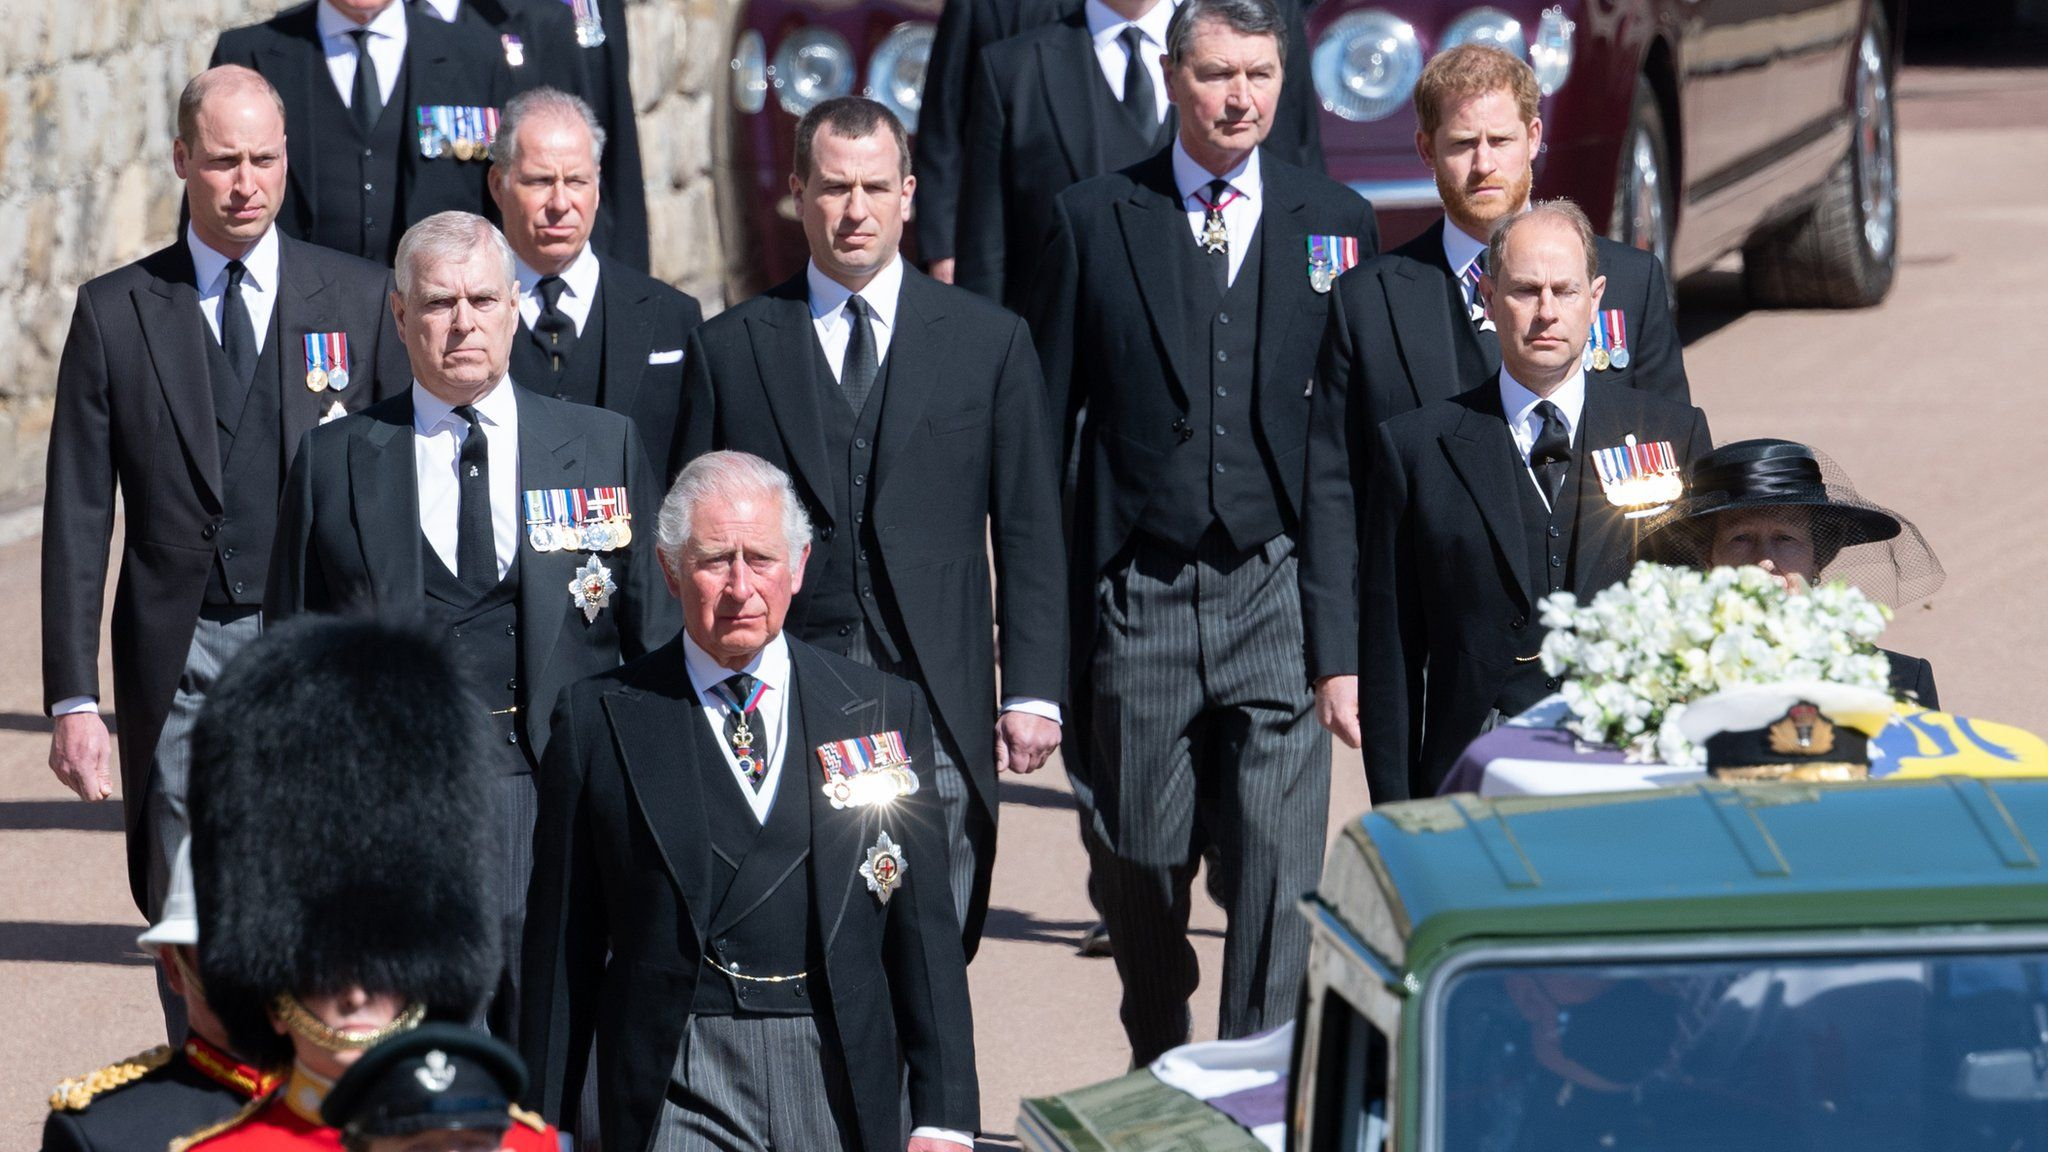 Senior royals walked behind Prince Philip's coffin during a televised procession